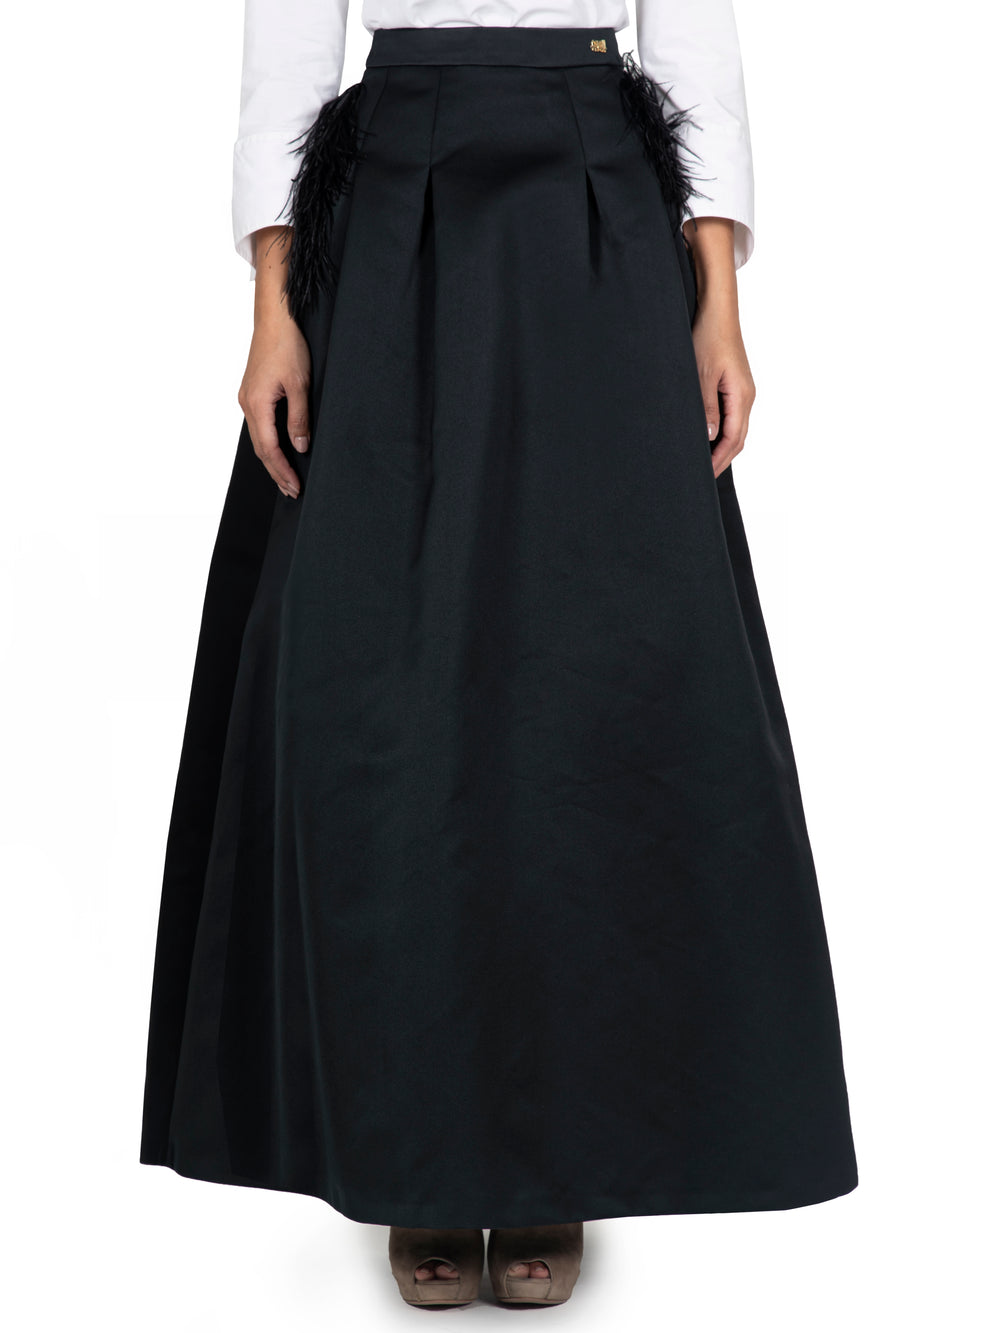 Plain Black A line Skirt